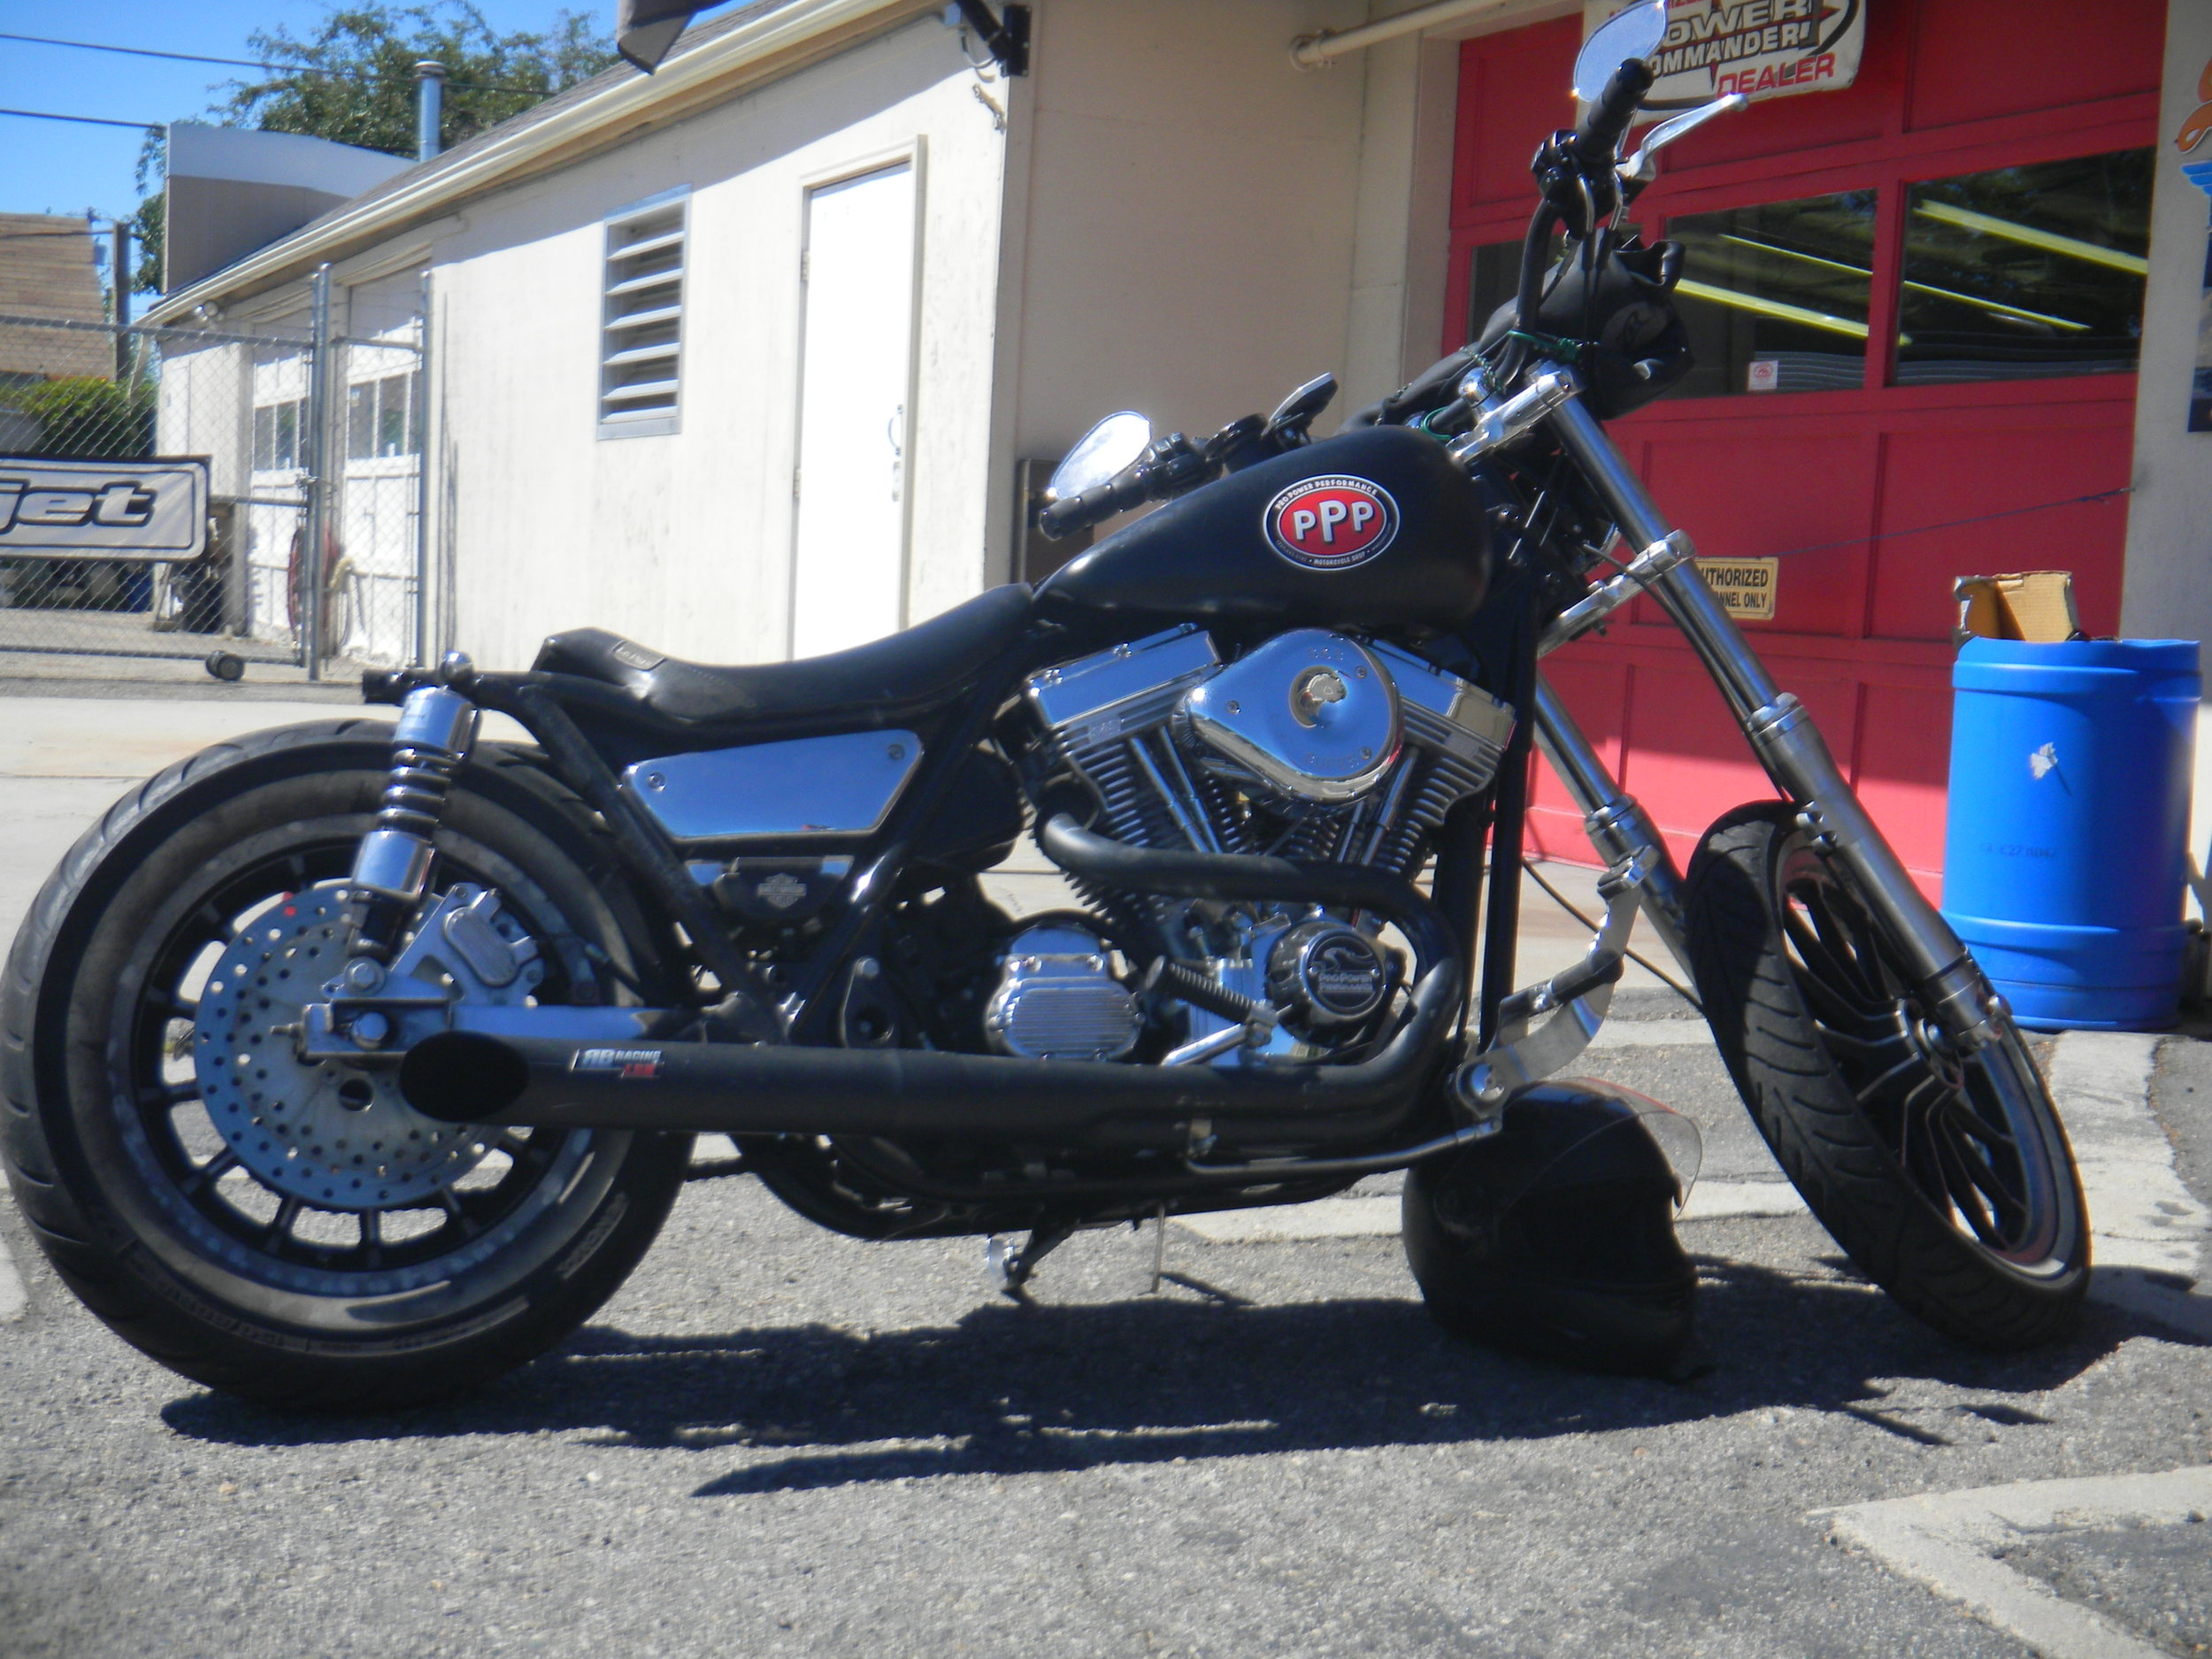 1986 ROMPIN', STOMPIN' HARLEY FXR WITH SS 124 MOTOR!